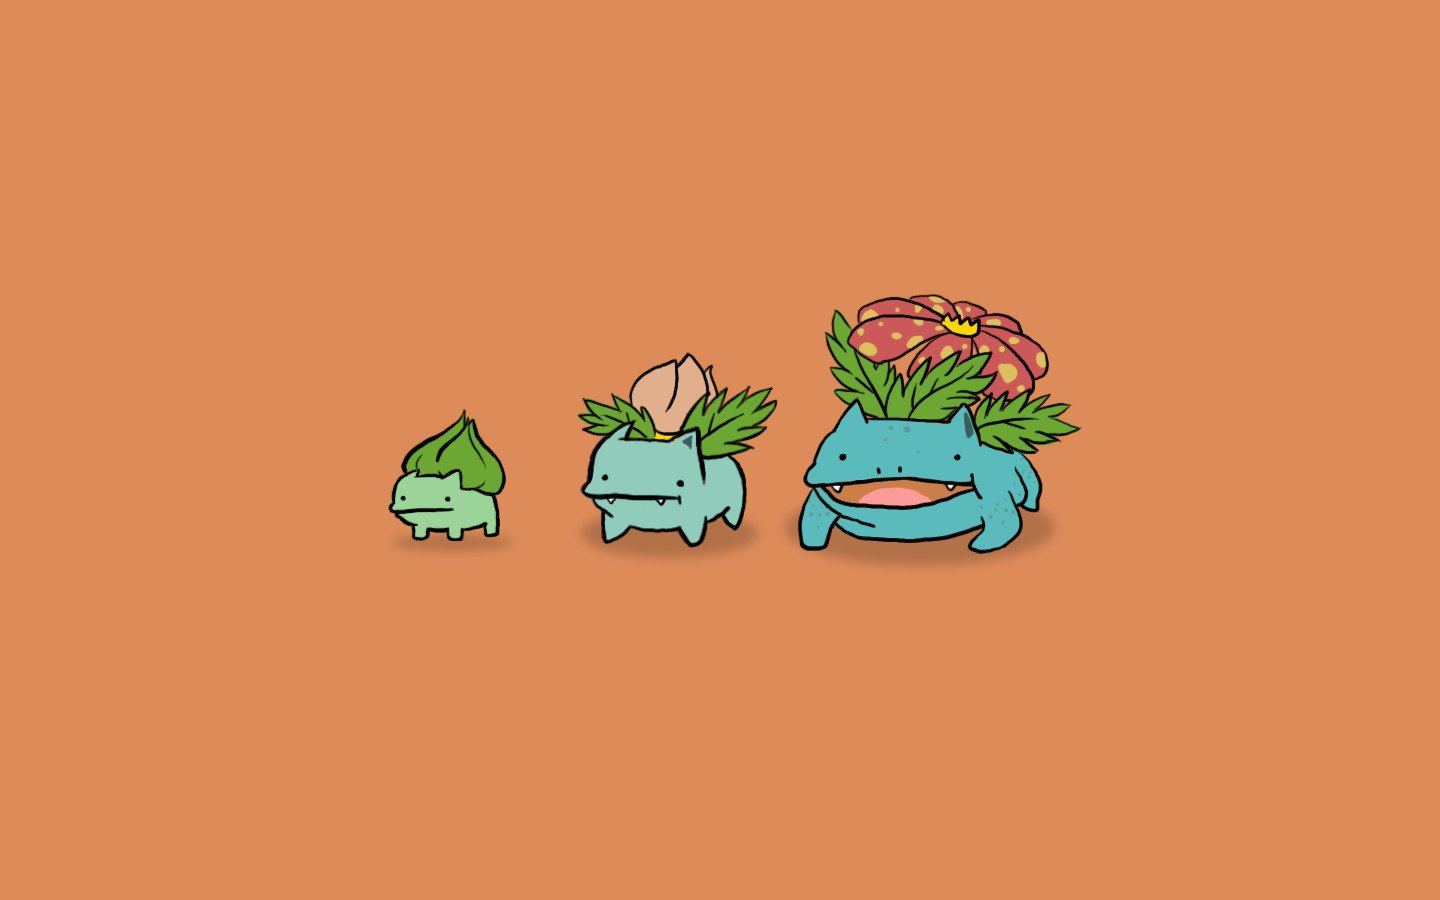 bulbasaur evolution wallpaper images - photo #10